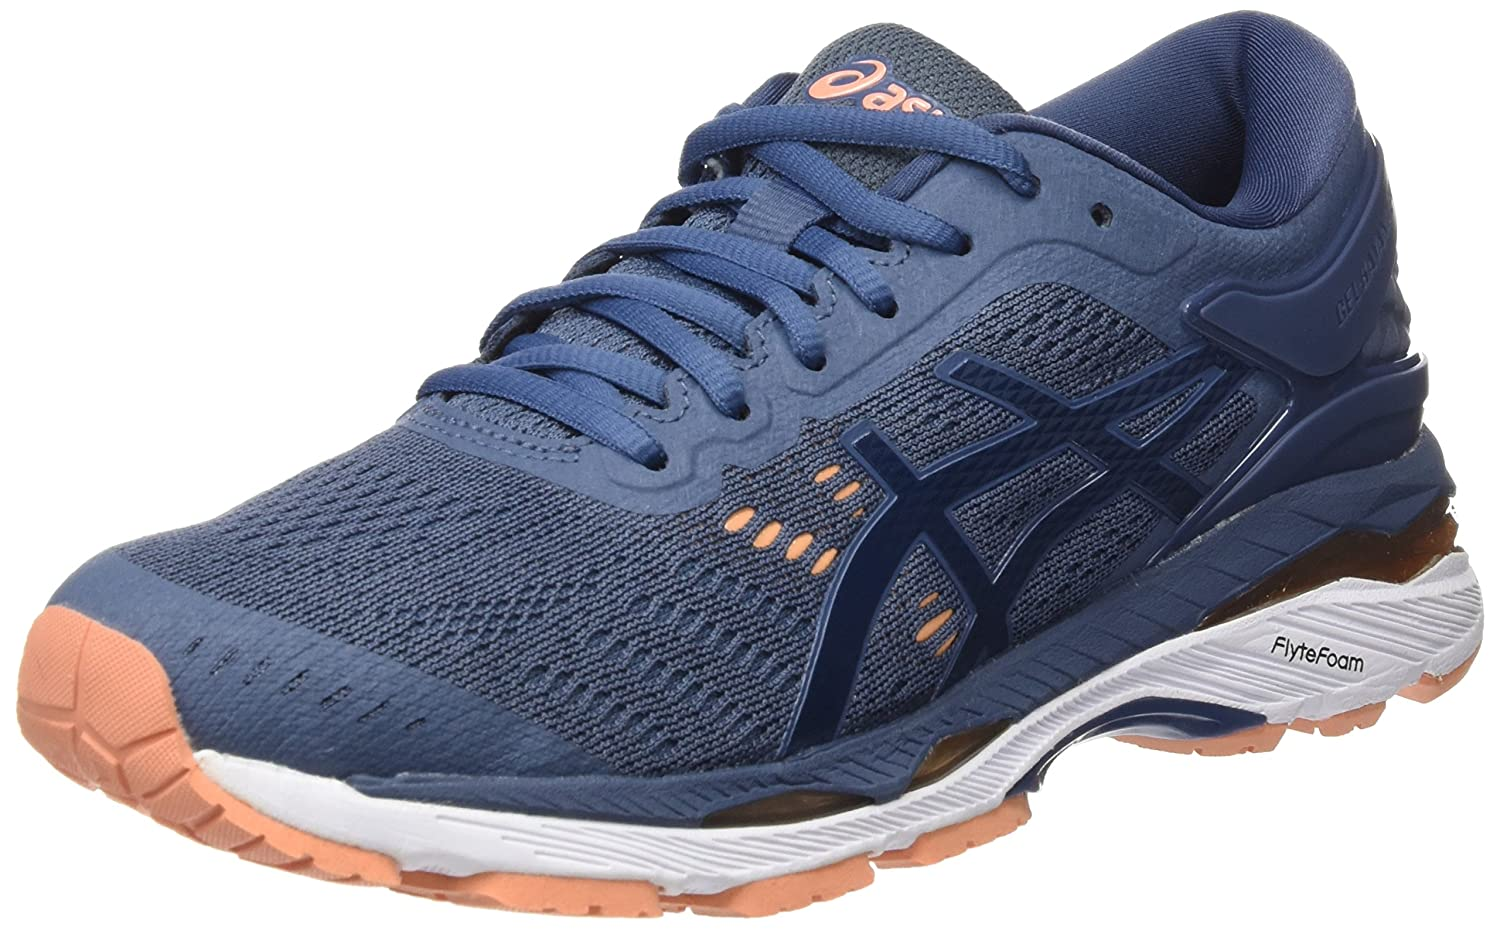 59fb0d1535 Amazon.com | ASICS Women's Gel-Kayano 24 Running Shoe, 6.5, Blue | Road  Running